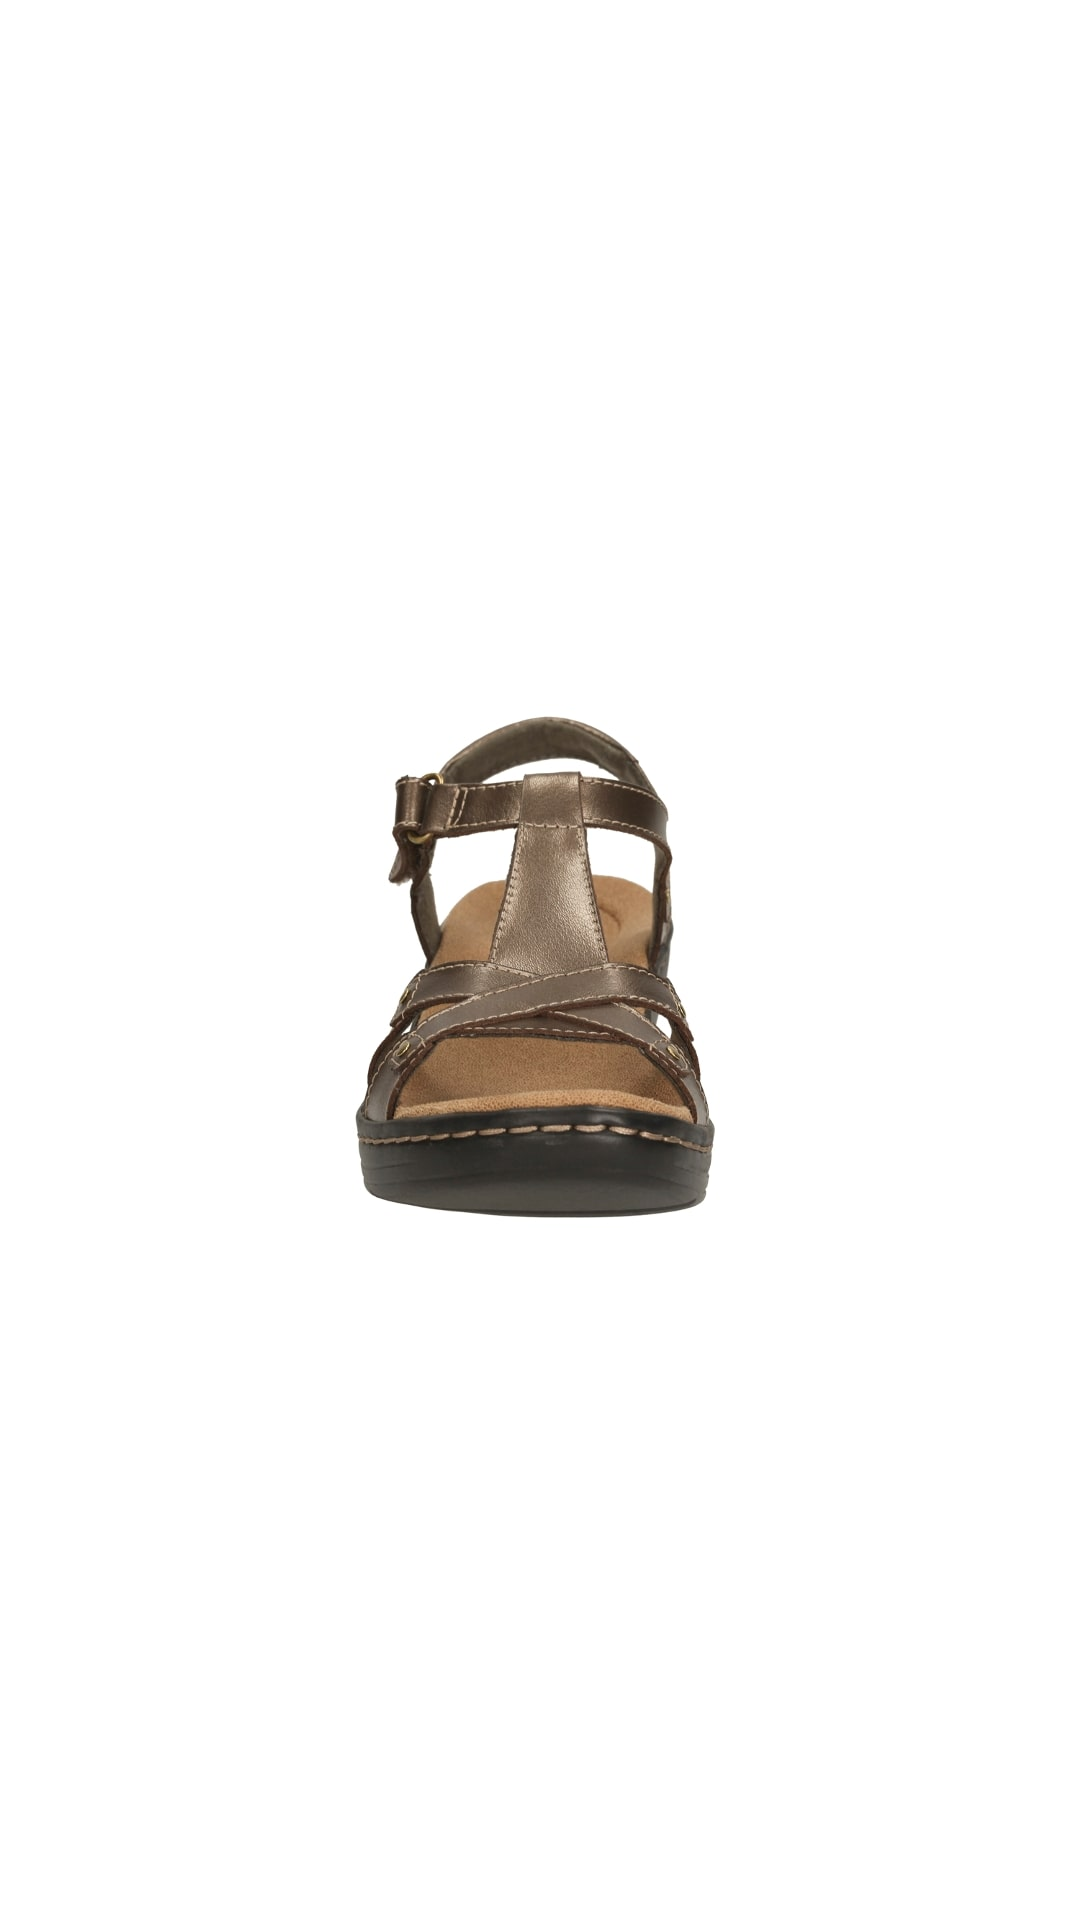 eece158ffef Buy Clarks Hayla Flute Pewter Leather Women Sandals   Floaters Online at  Low Prices in India - Paytmmall.com